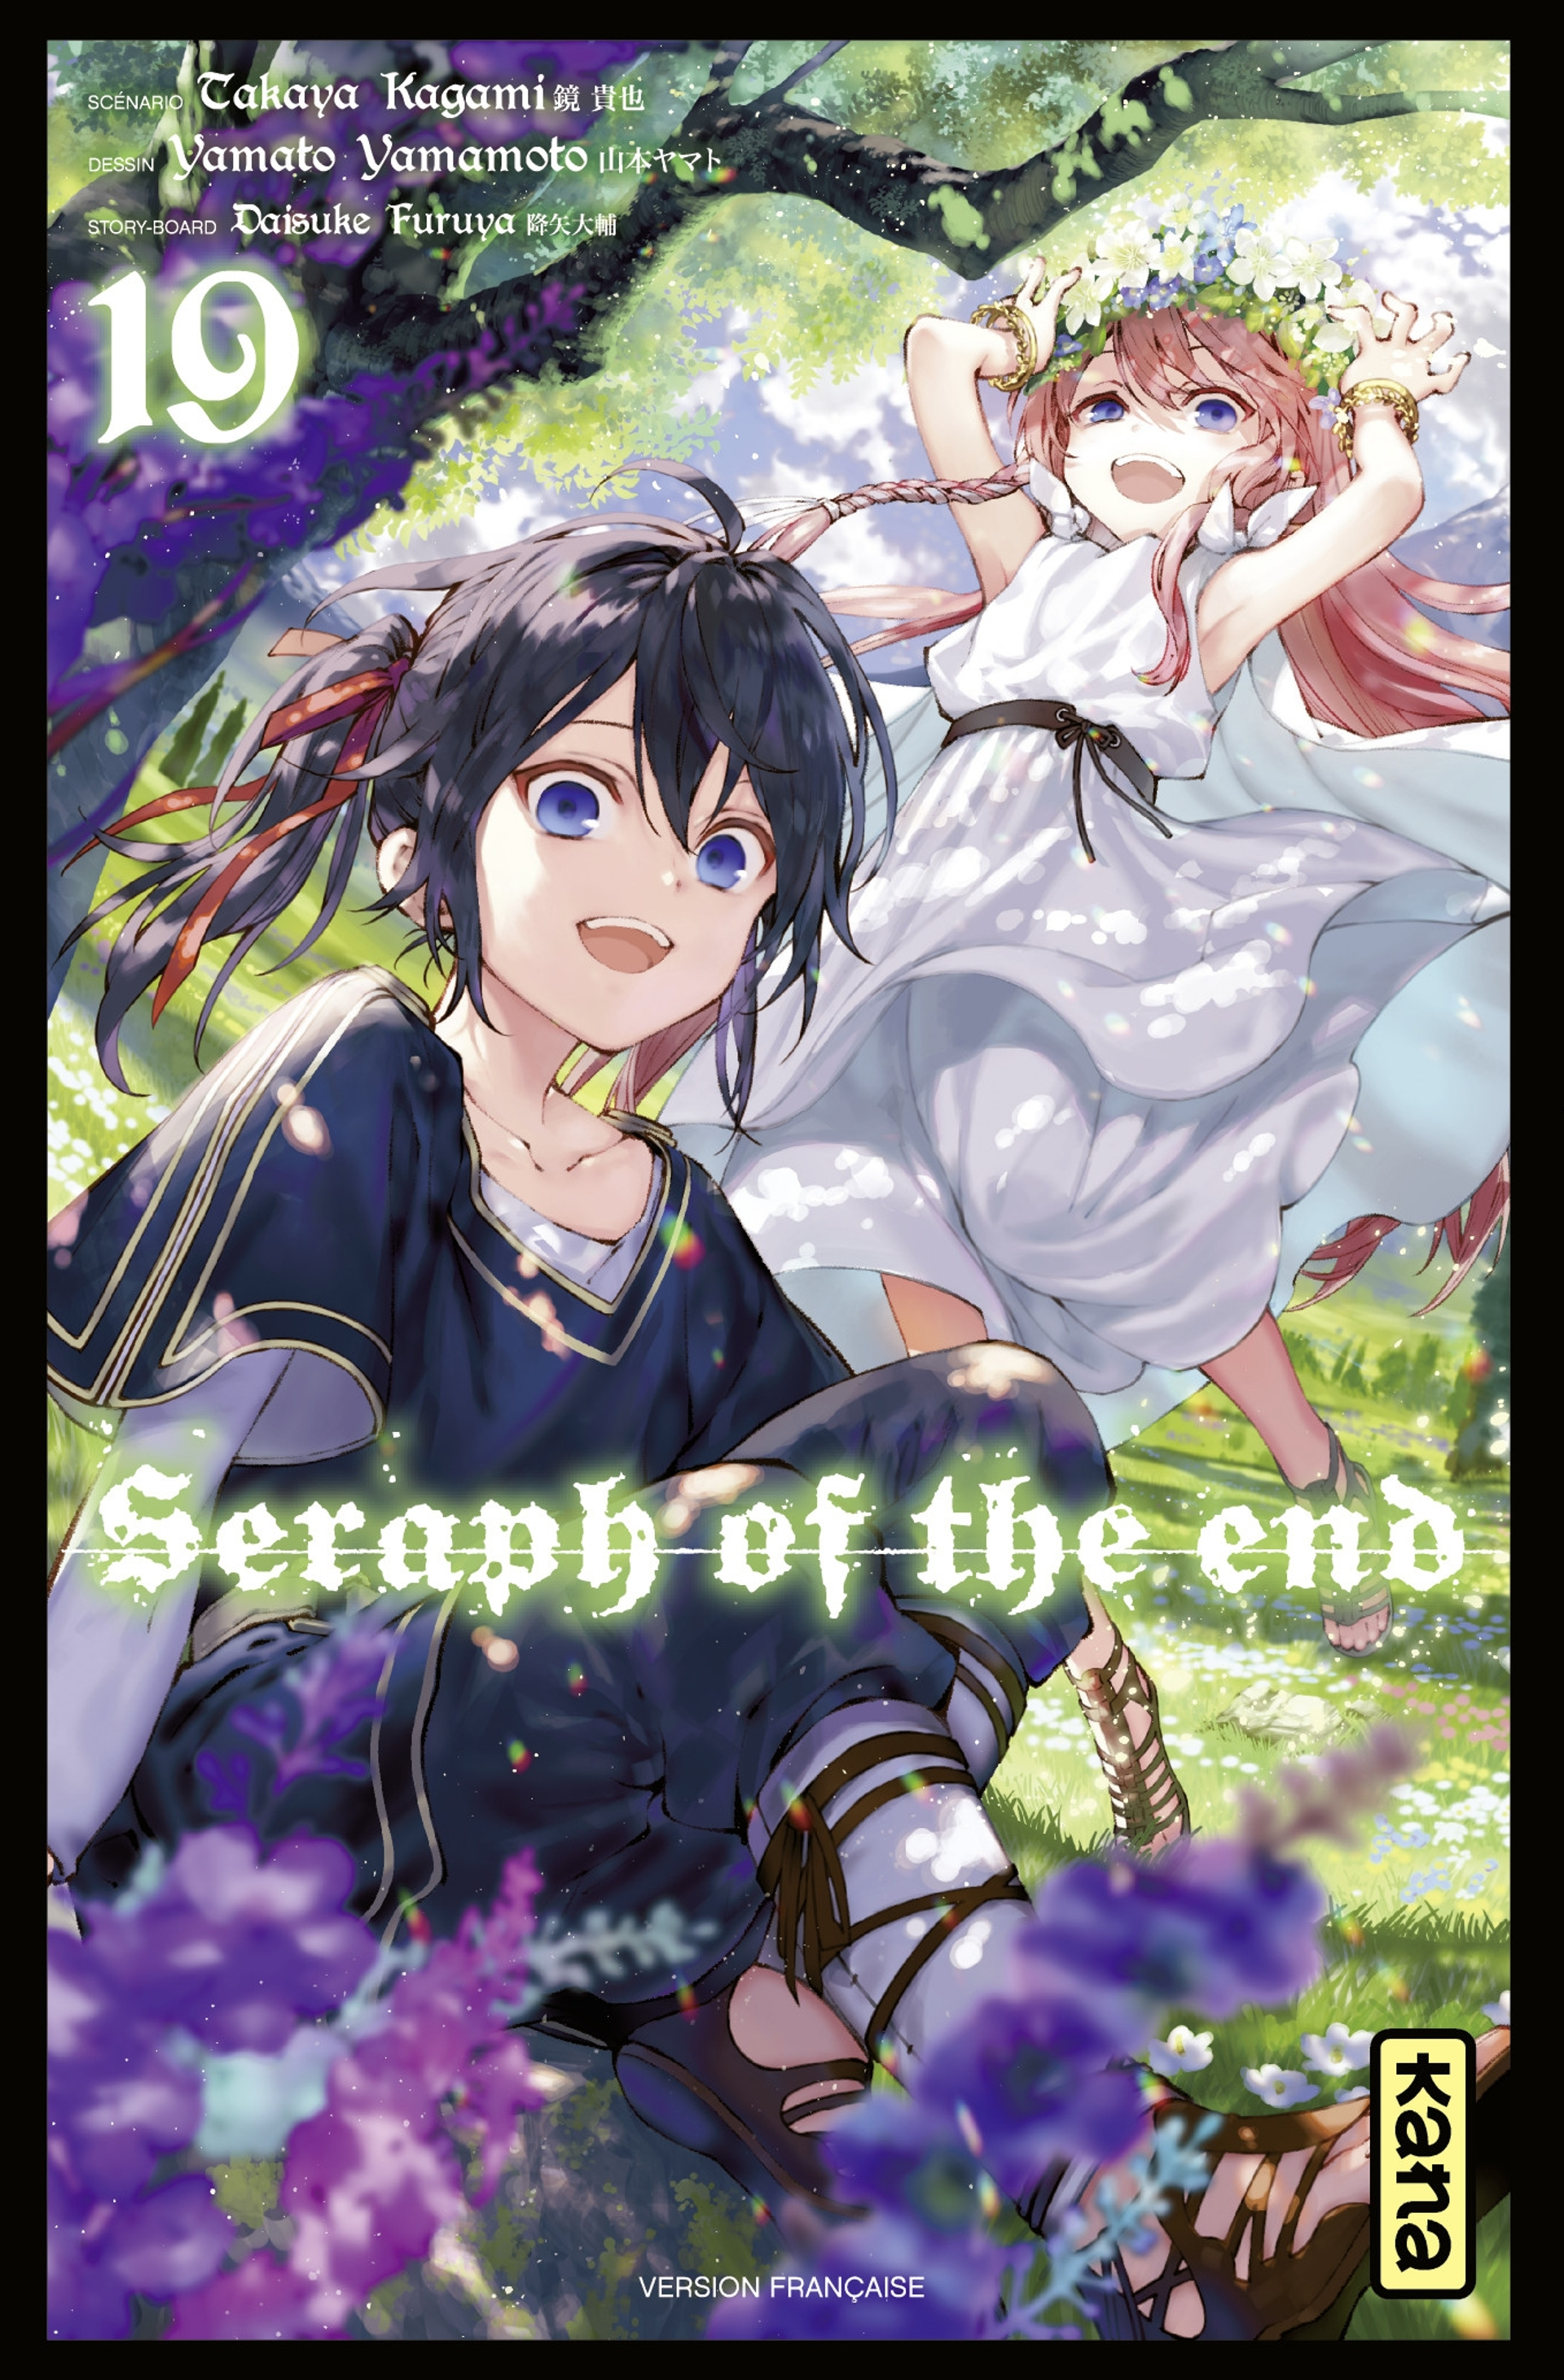 Seraph of the end 19